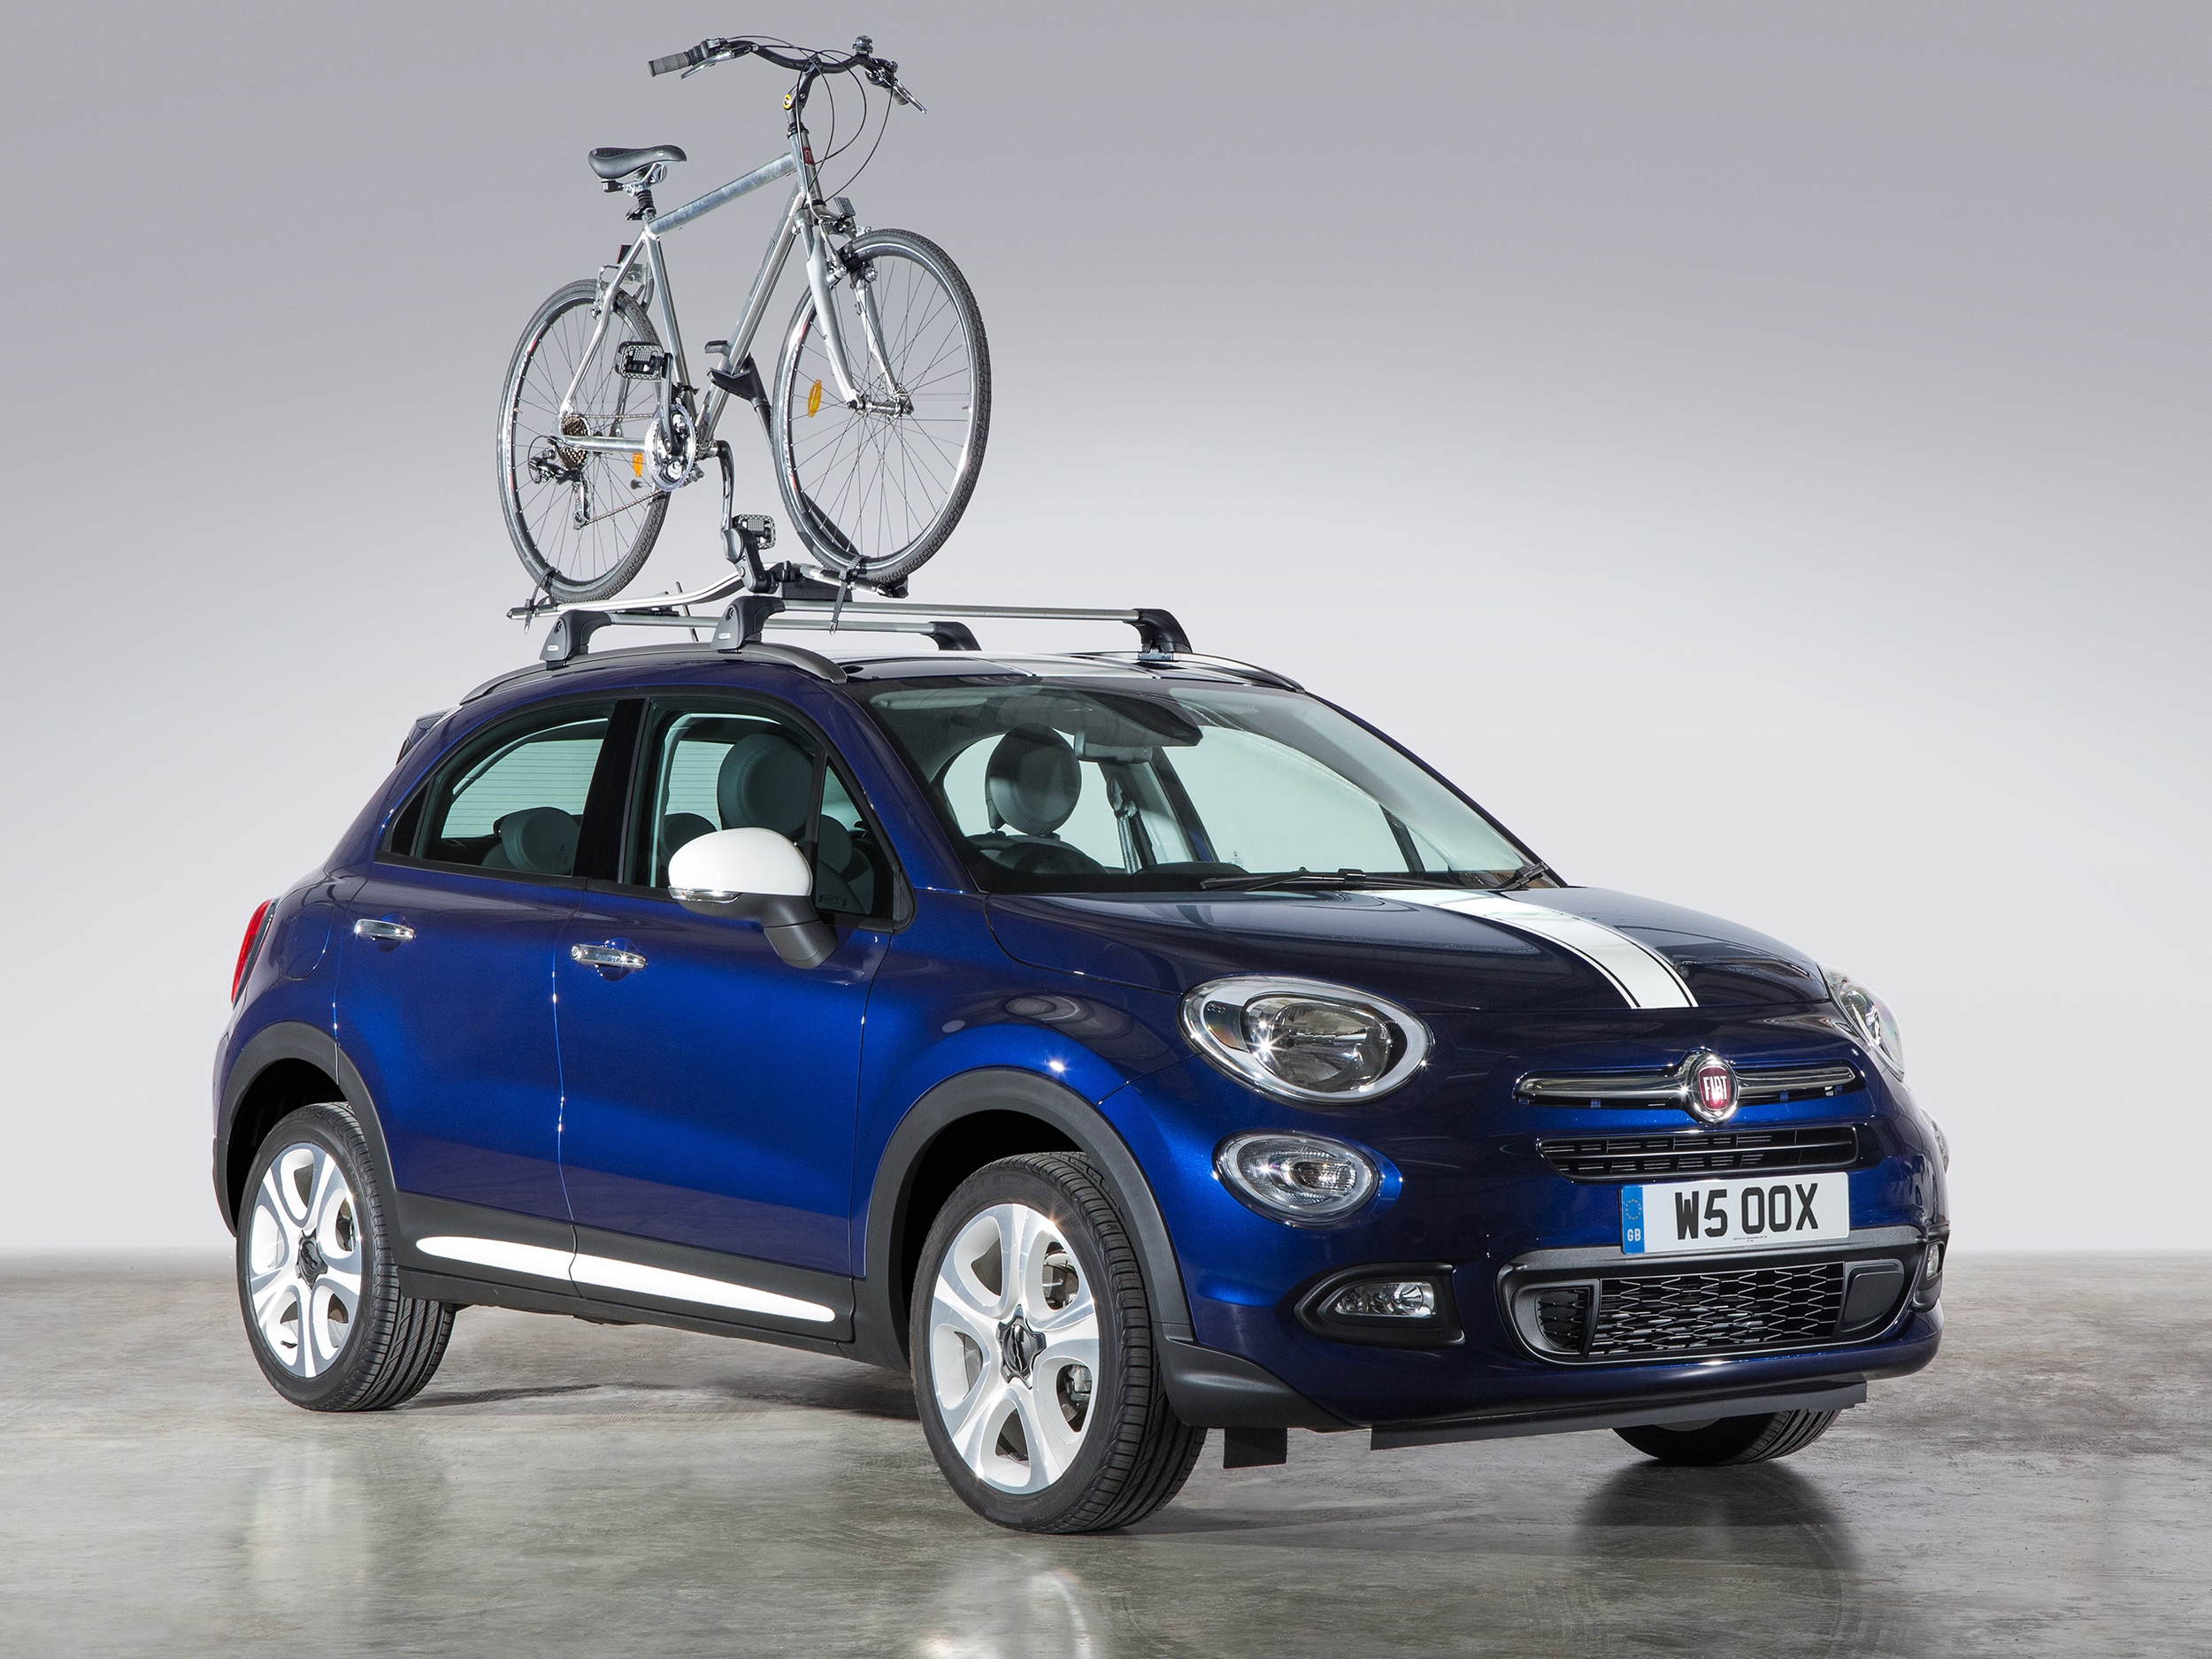 Fiat 500X gets new Mopar accessories